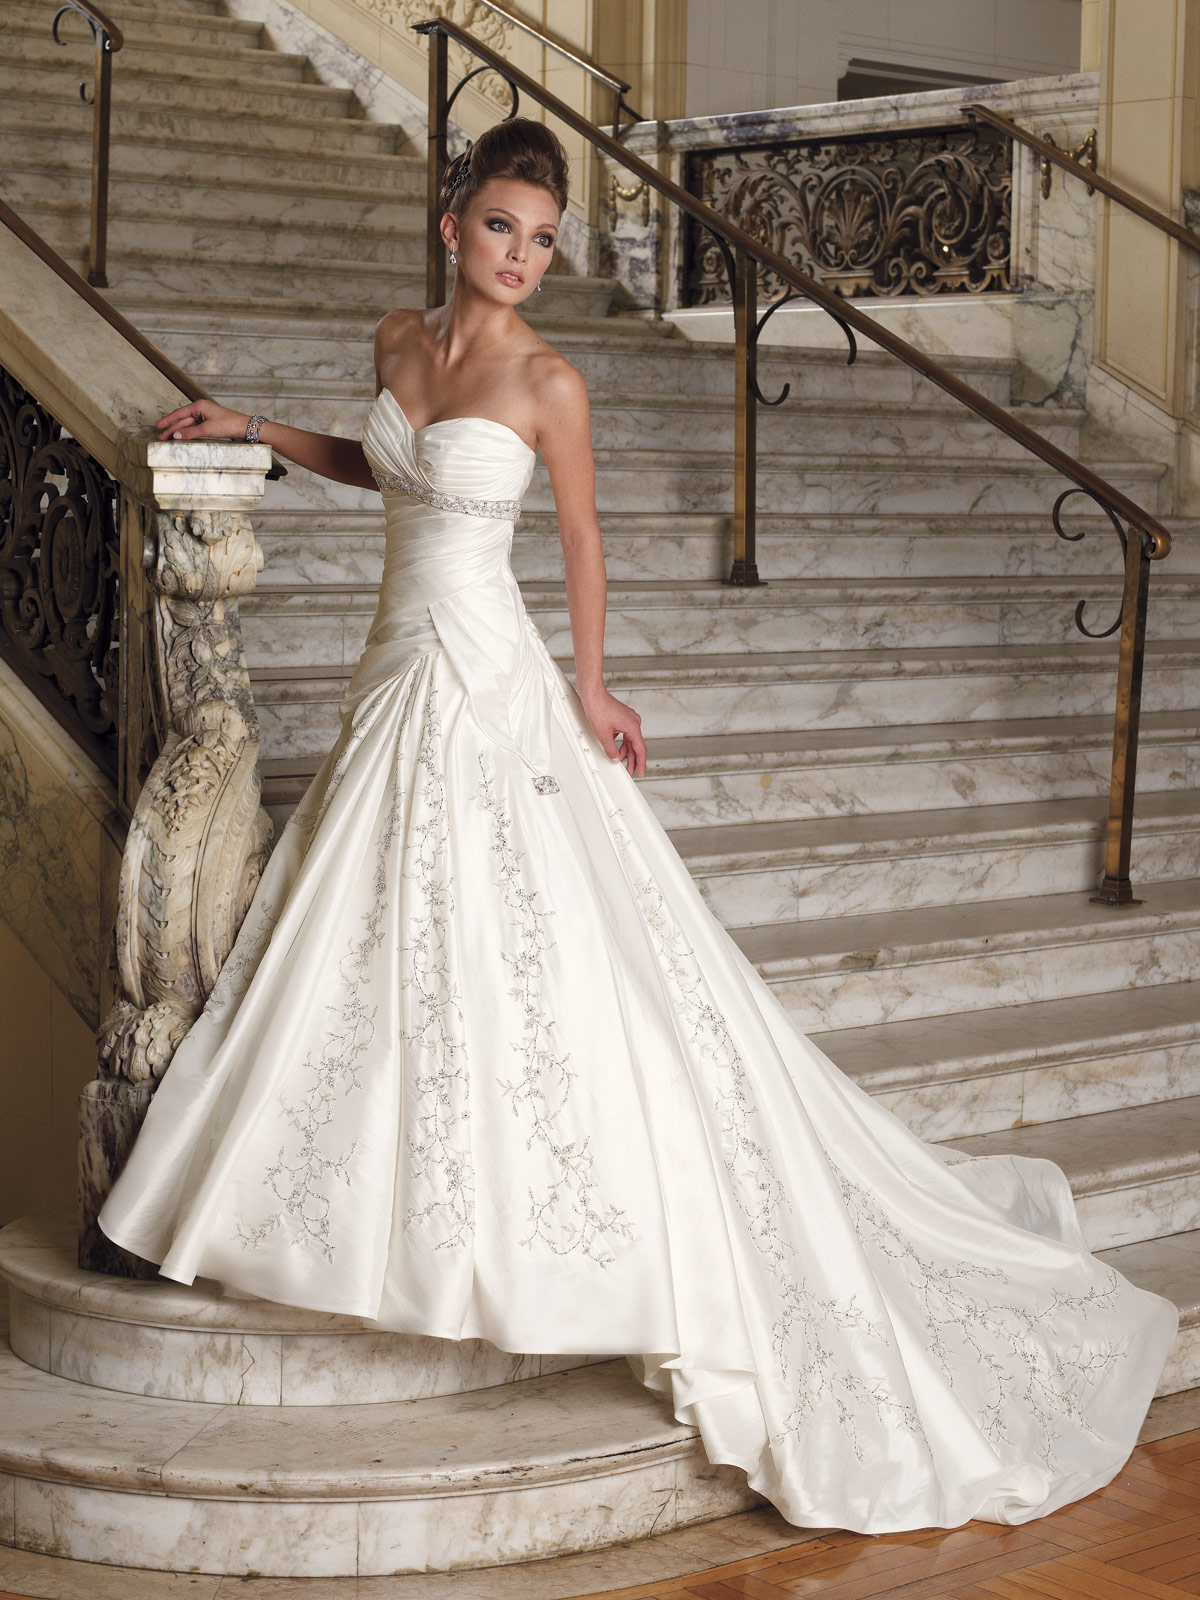 2010 Best Ers Wedding Gown By Sophia Tolli Picture 1